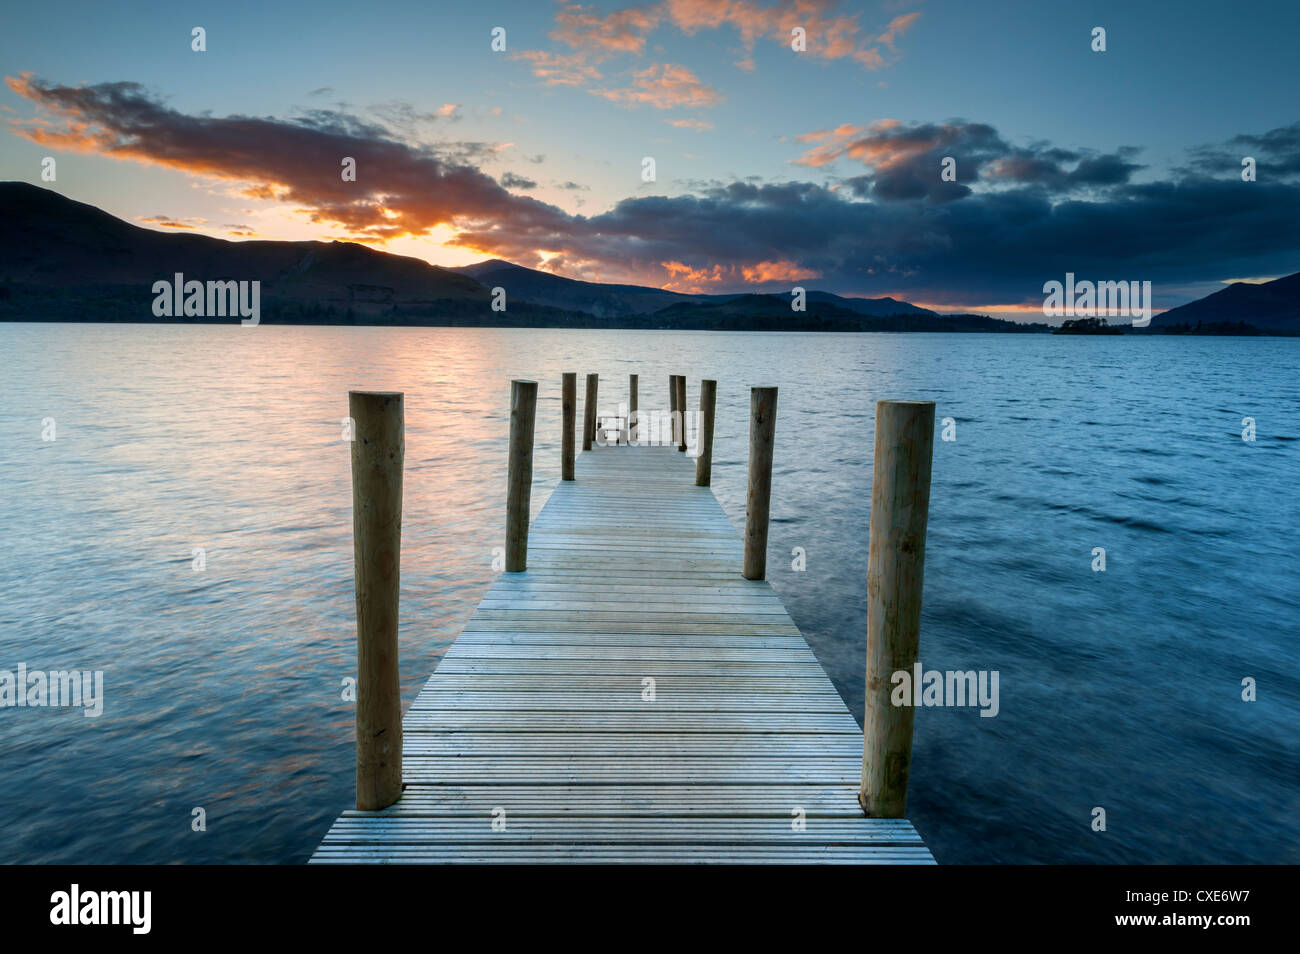 Sonnenuntergang am Ashness Steg, Barrow Bay, Derwent Water, Keswick, Nationalpark Lake District, Cumbria, England Stockbild